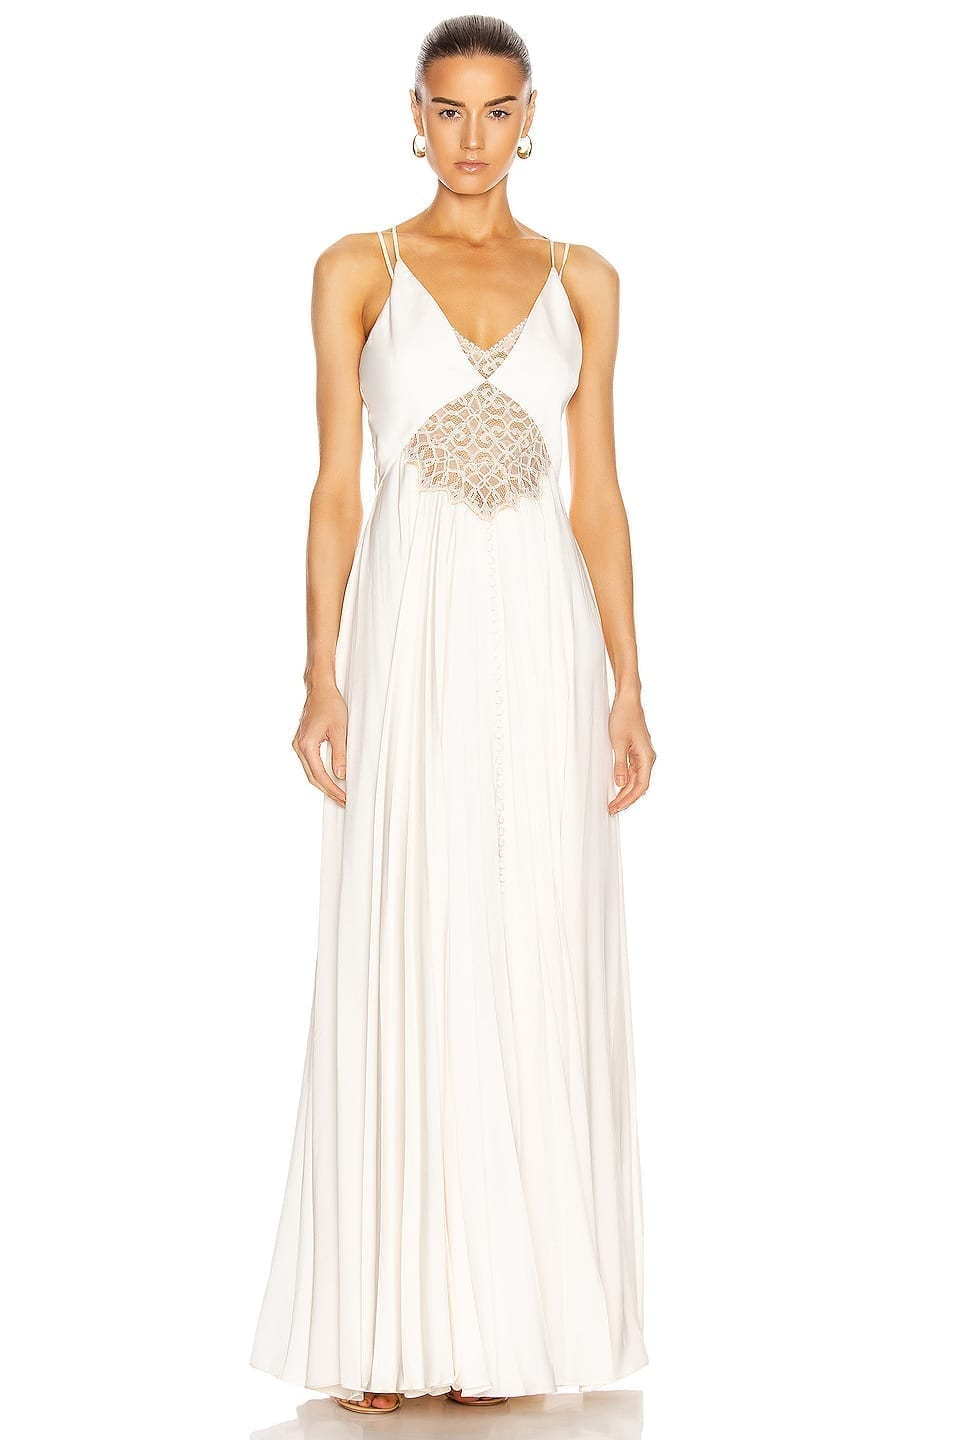 JONATHAN SIMKHAI Kolbi Charmeuse Dress